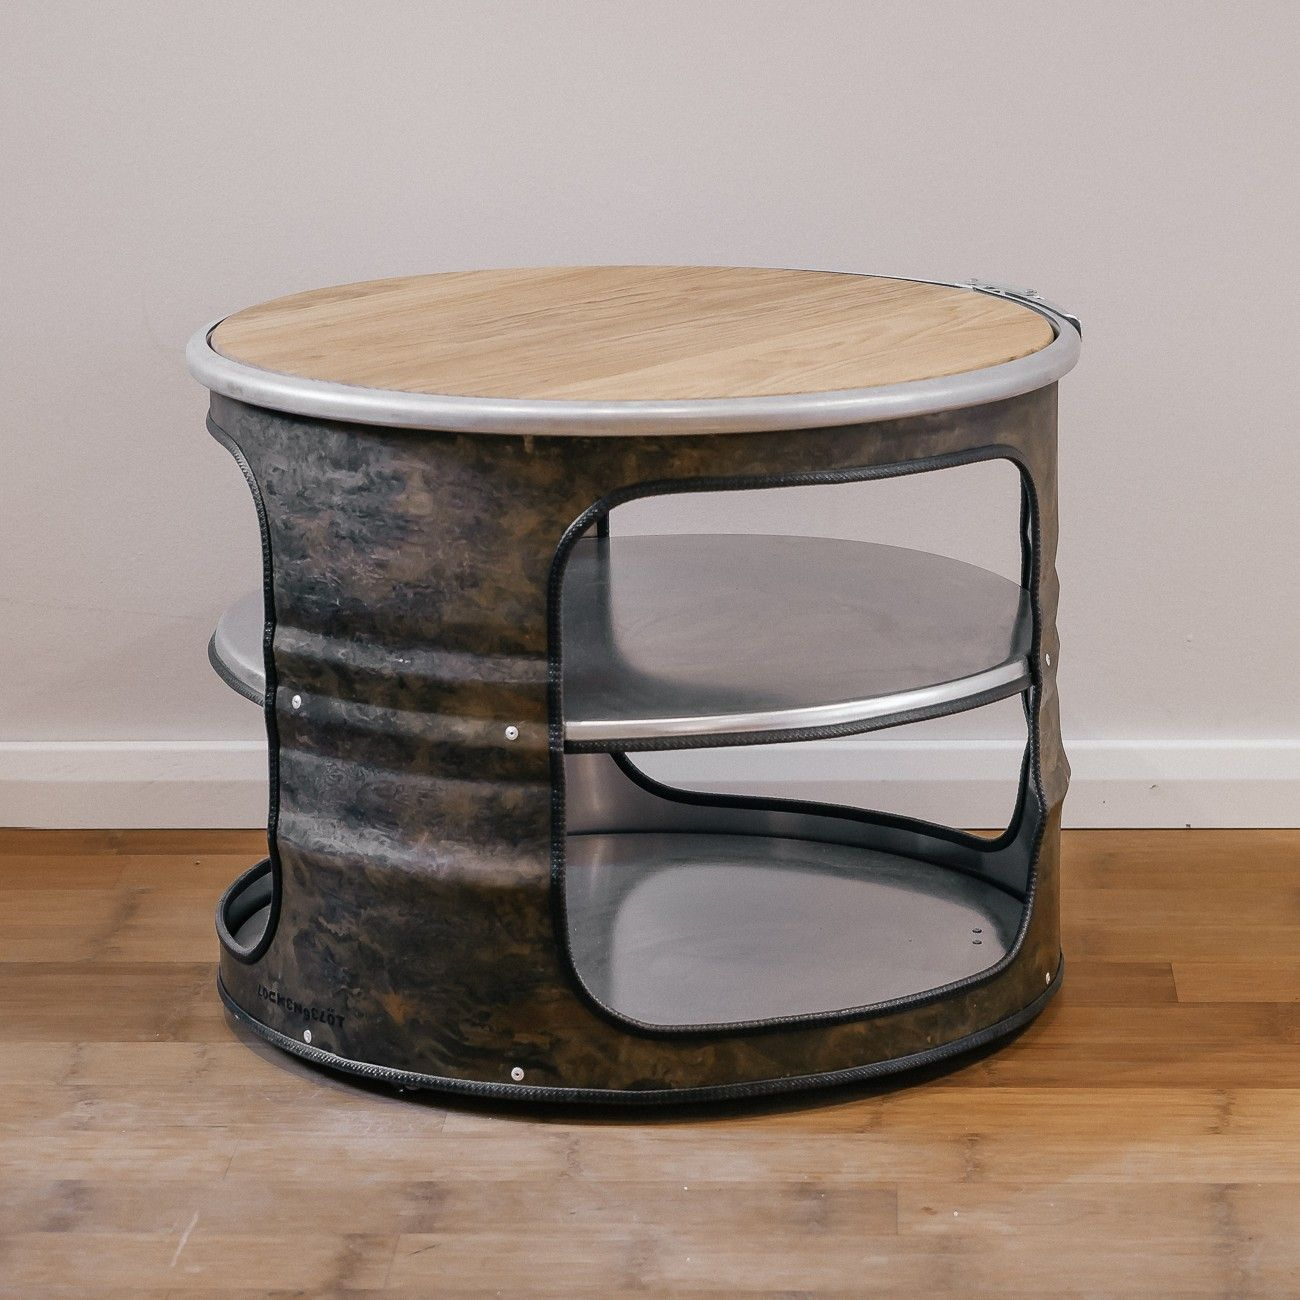 Couchtisch Rund öltonne Industrial-style Pin By Yesecart On Drums In 2019 | Barrel Furniture, Oil